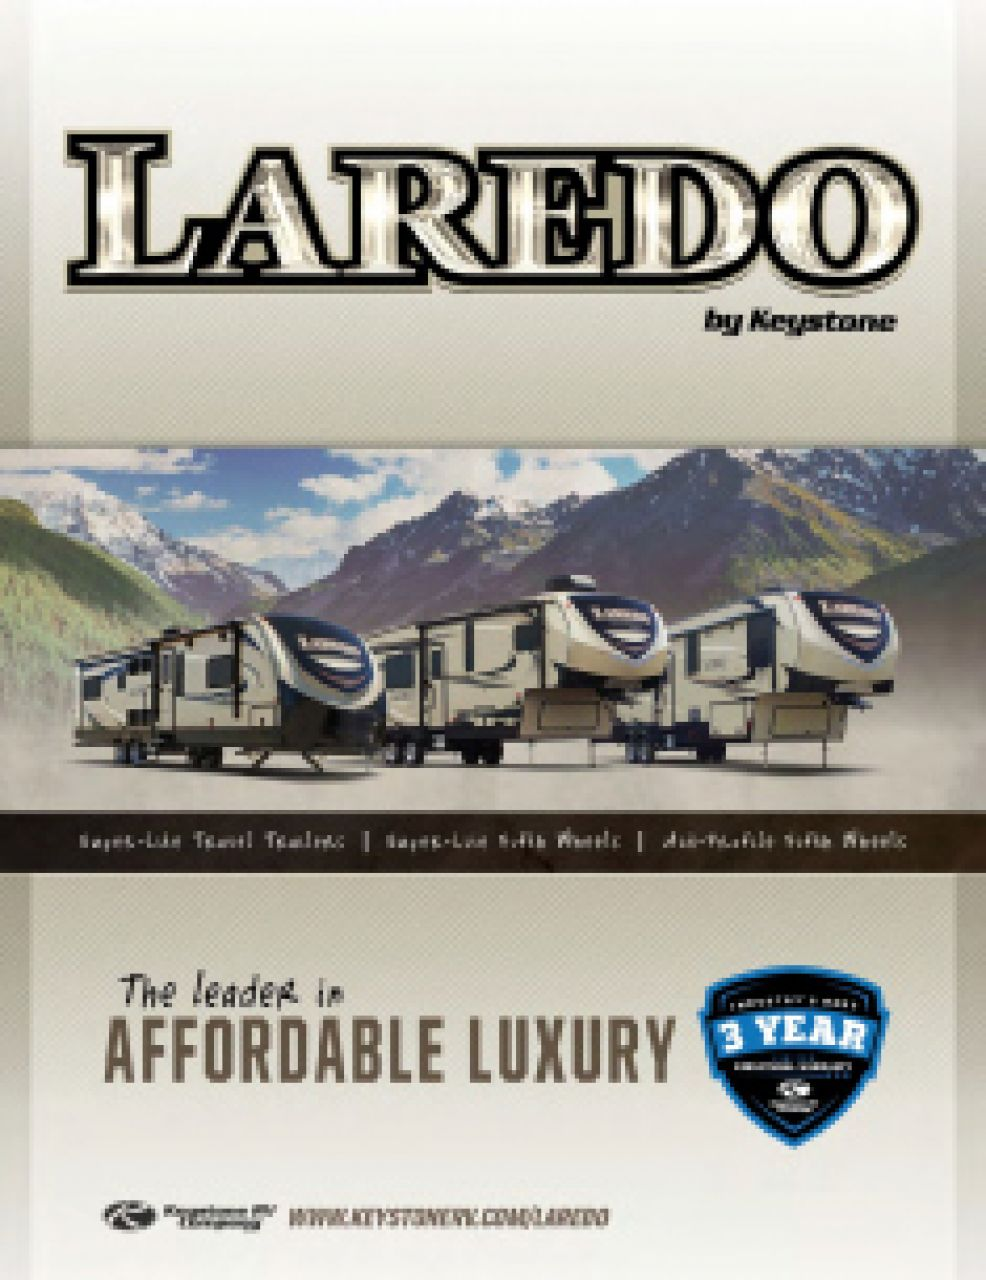 2019 Keystone Laredo RV Brochure Cover